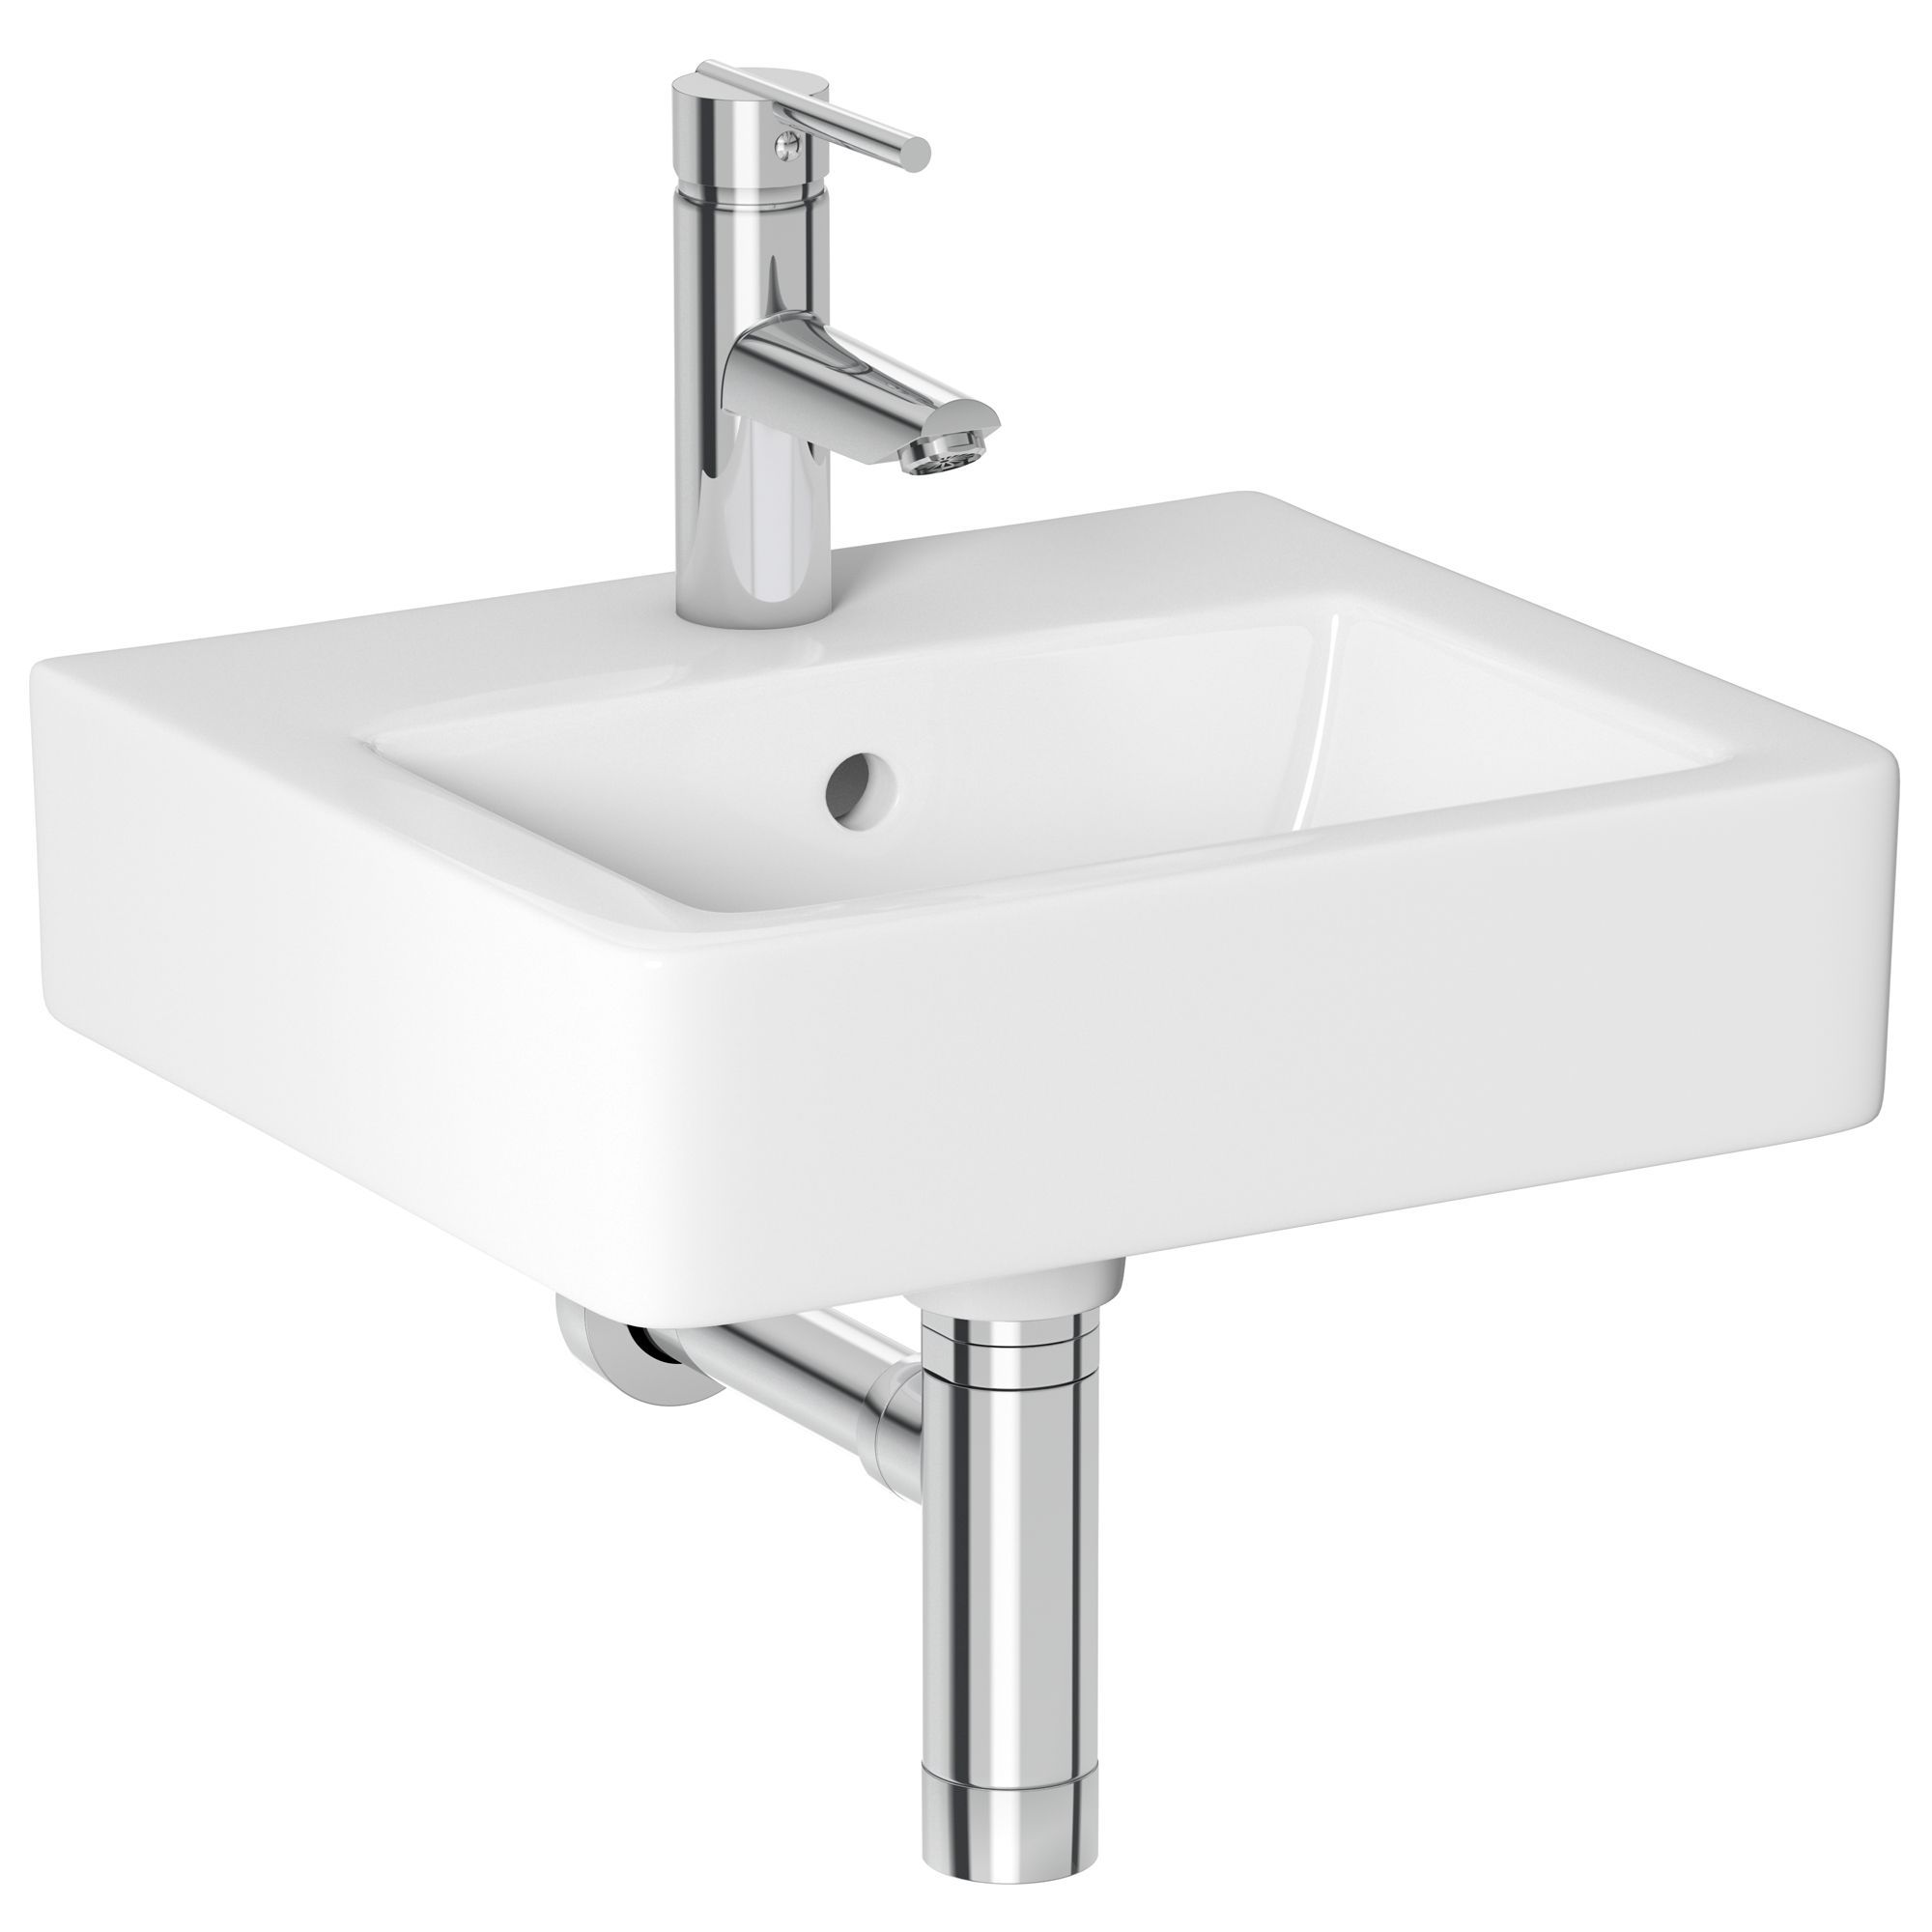 Bathroom Sinks B&Q cooke & lewis alexas square cloakroom basin | departments | diy at b&q